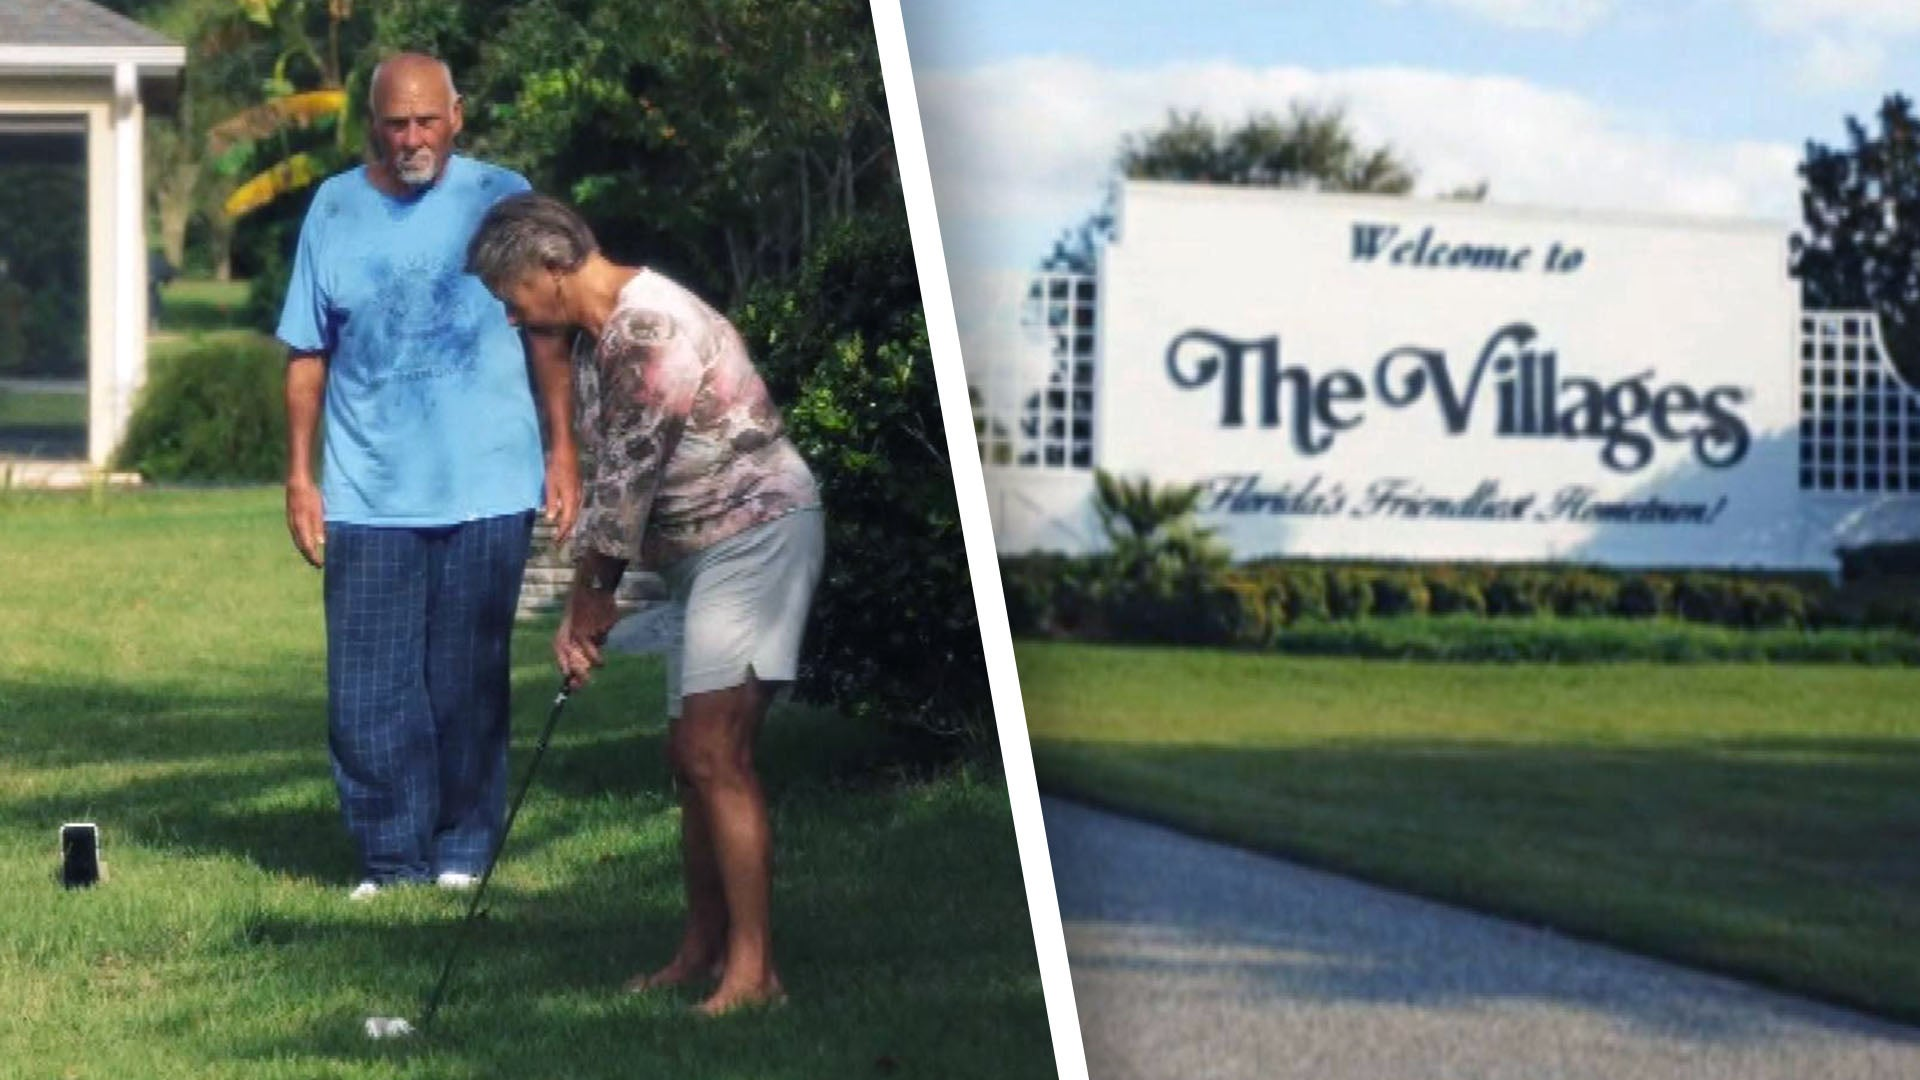 Largest Retirement Community Allegedly Has a Hard Party Scene